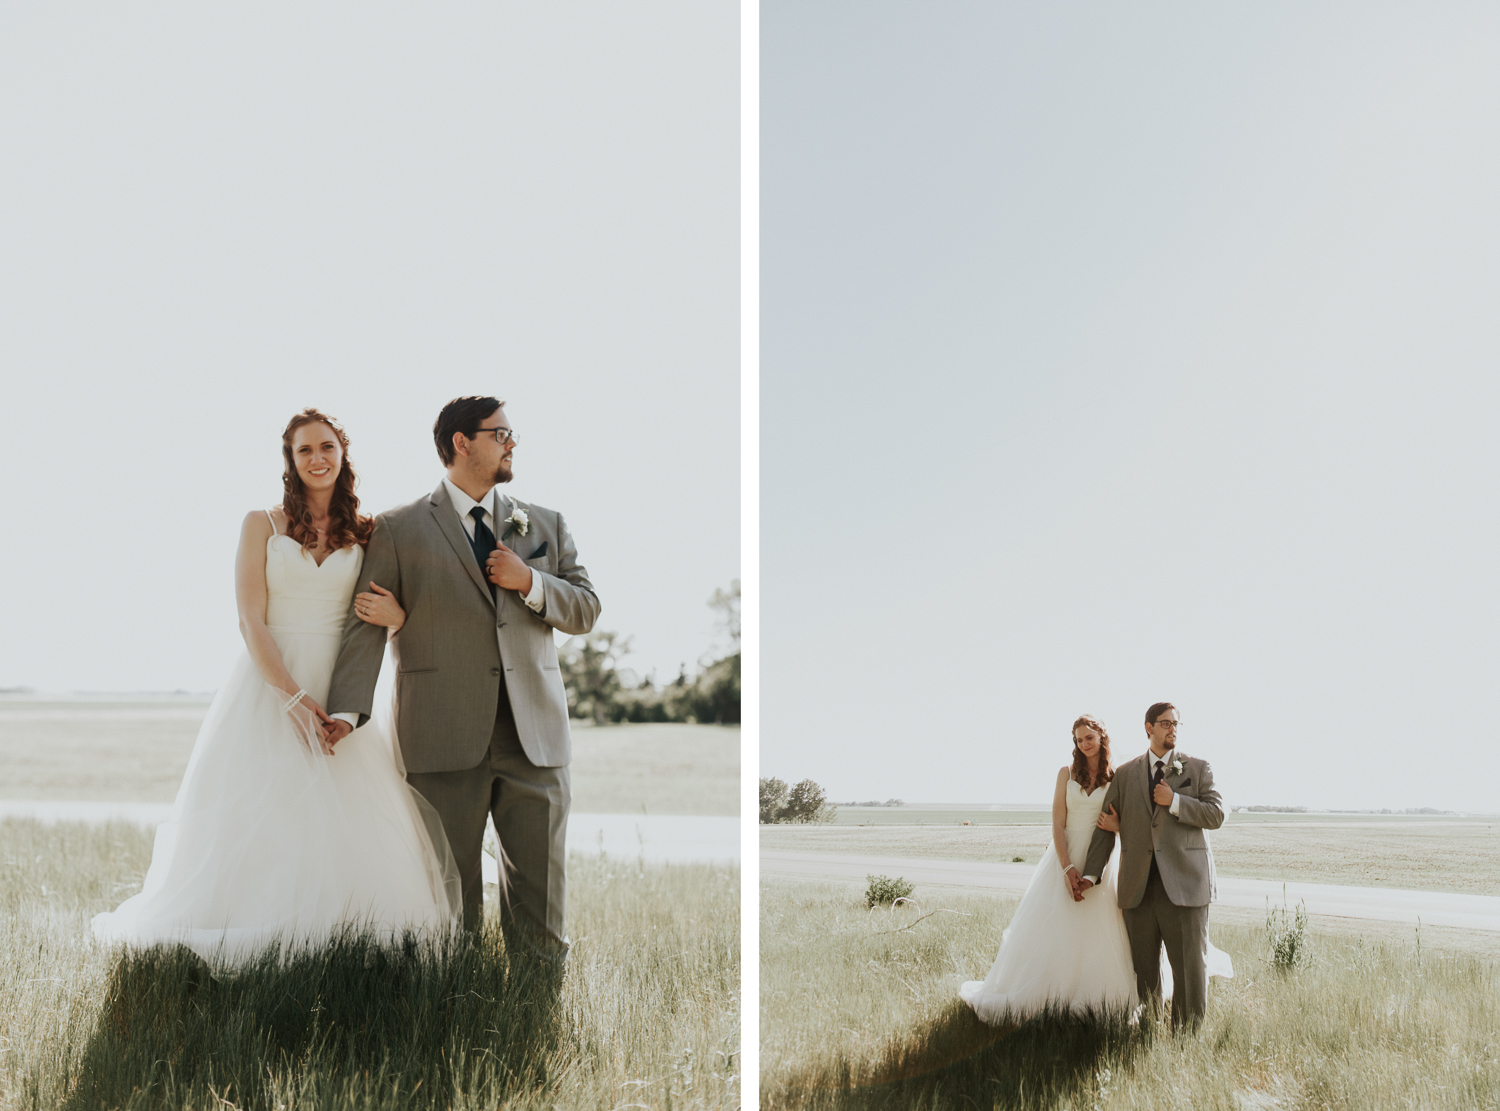 lethbridge-wedding-photographer-love-and-be-loved-photography-dan-tynnea-picture-image-photo-203.jpg